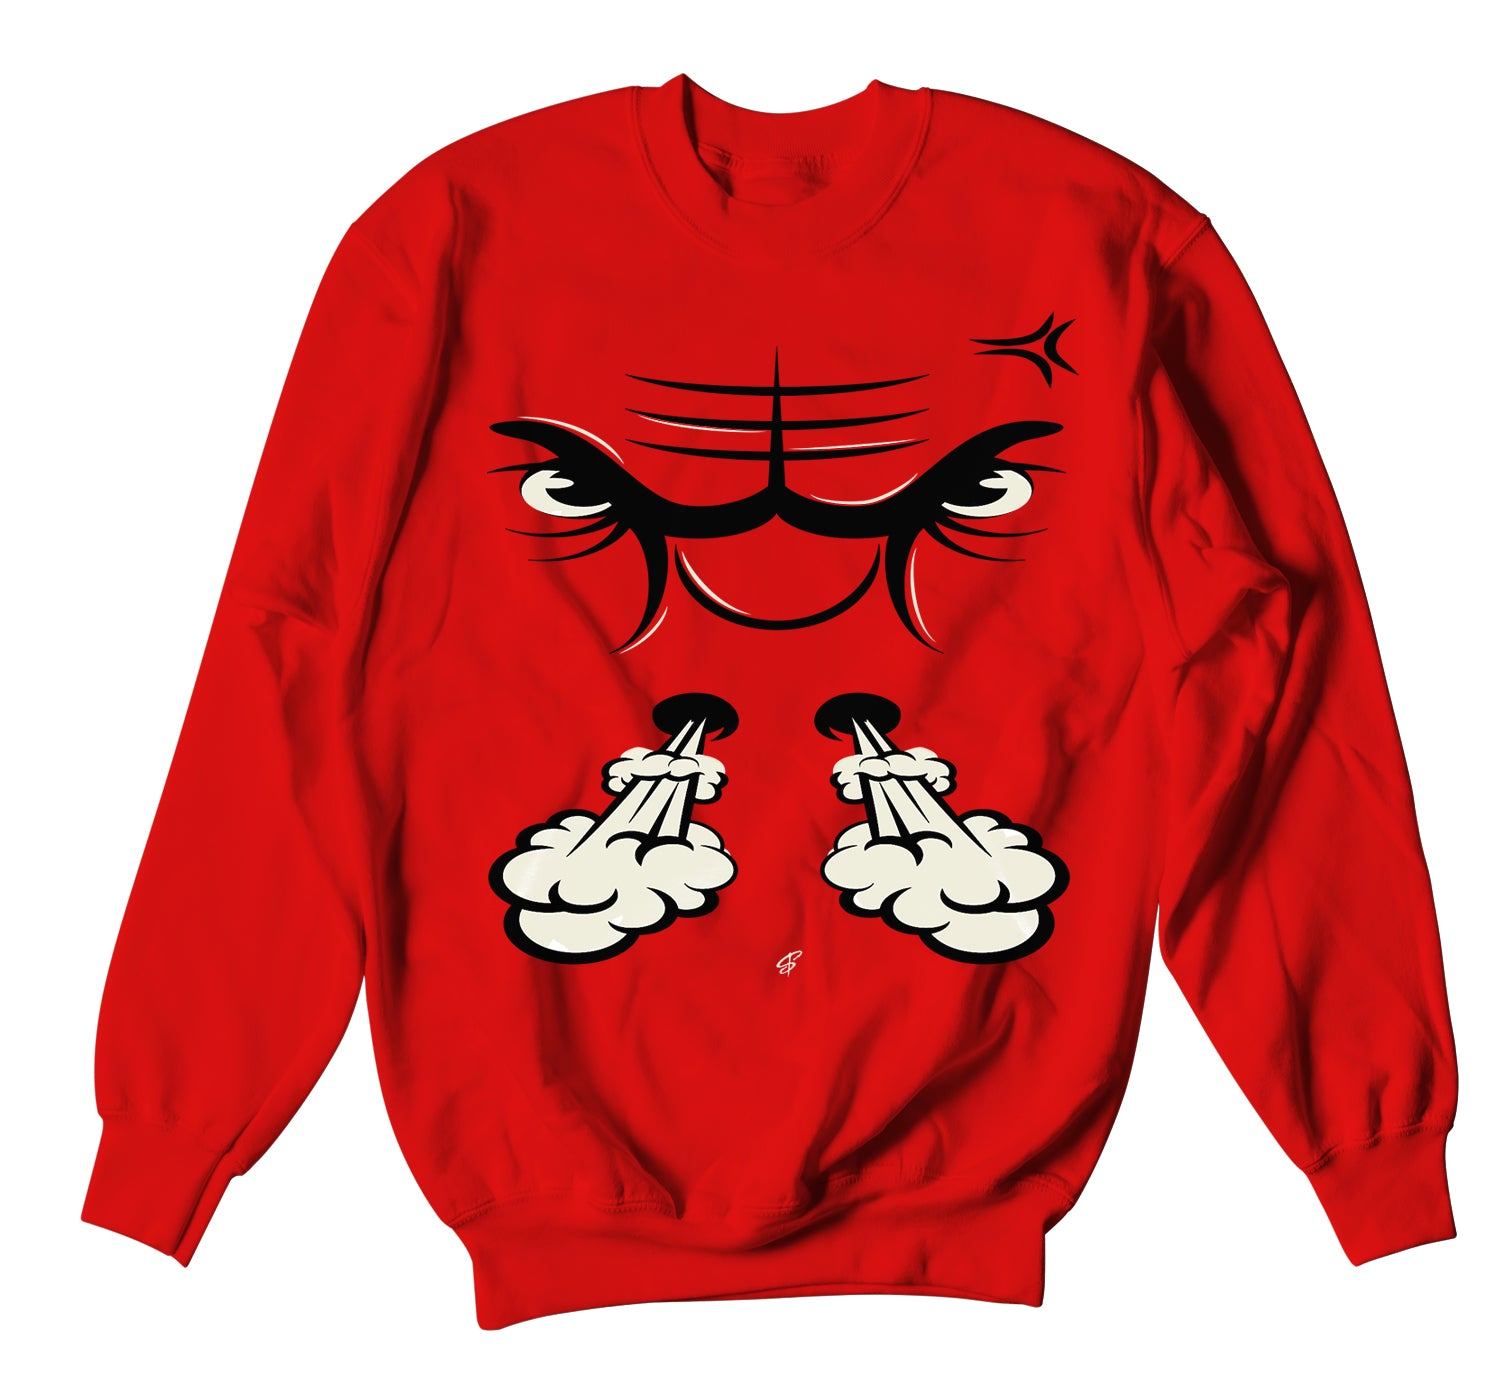 Jordan 6 Carmine Sweater - Raging Face - Red